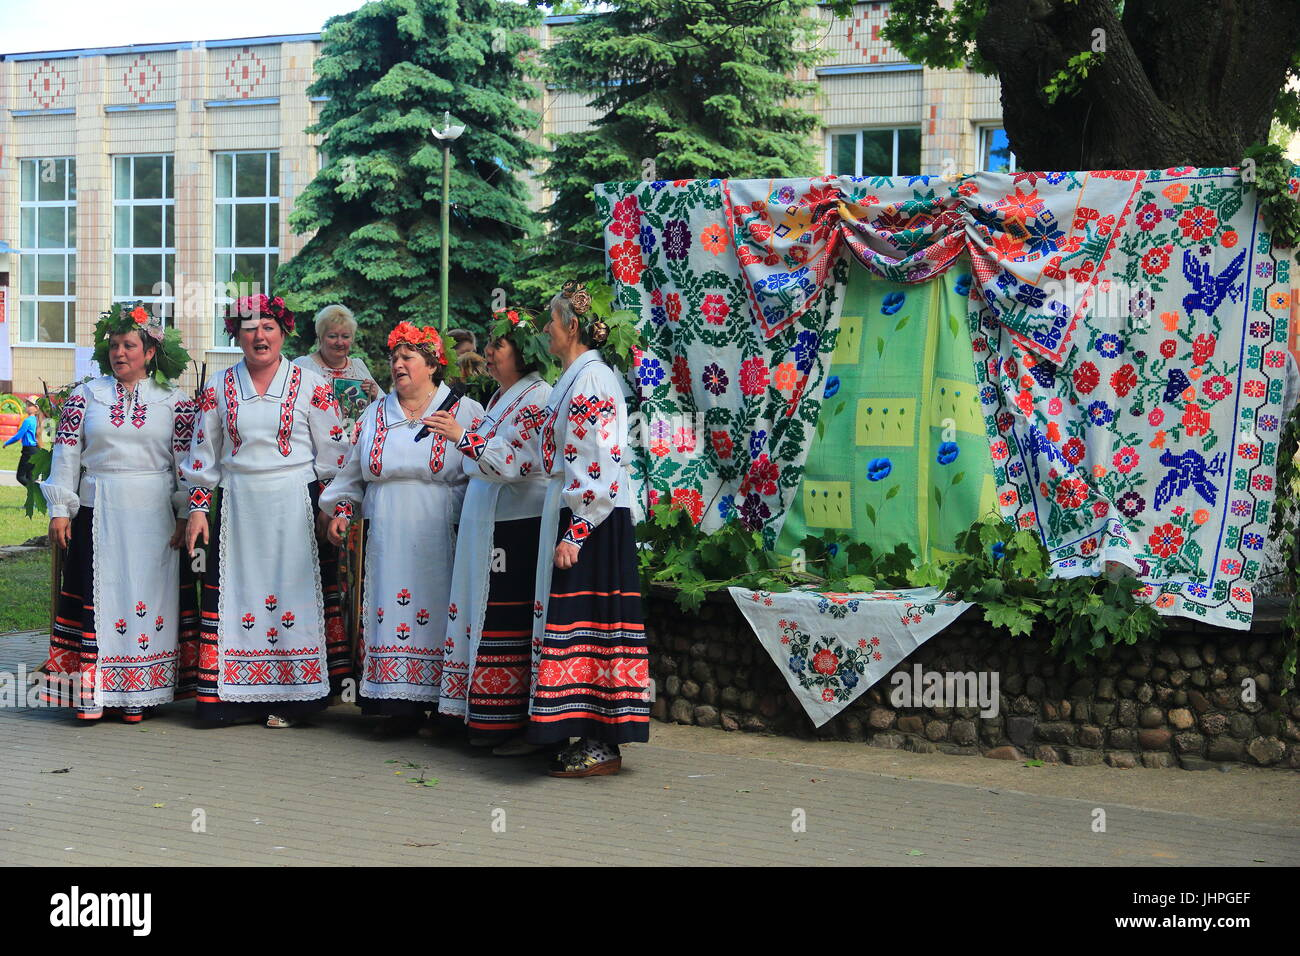 Celebrating the day of Pentecost in the village (agro-town). Performance of the song by an authentic folk band - Stock Image